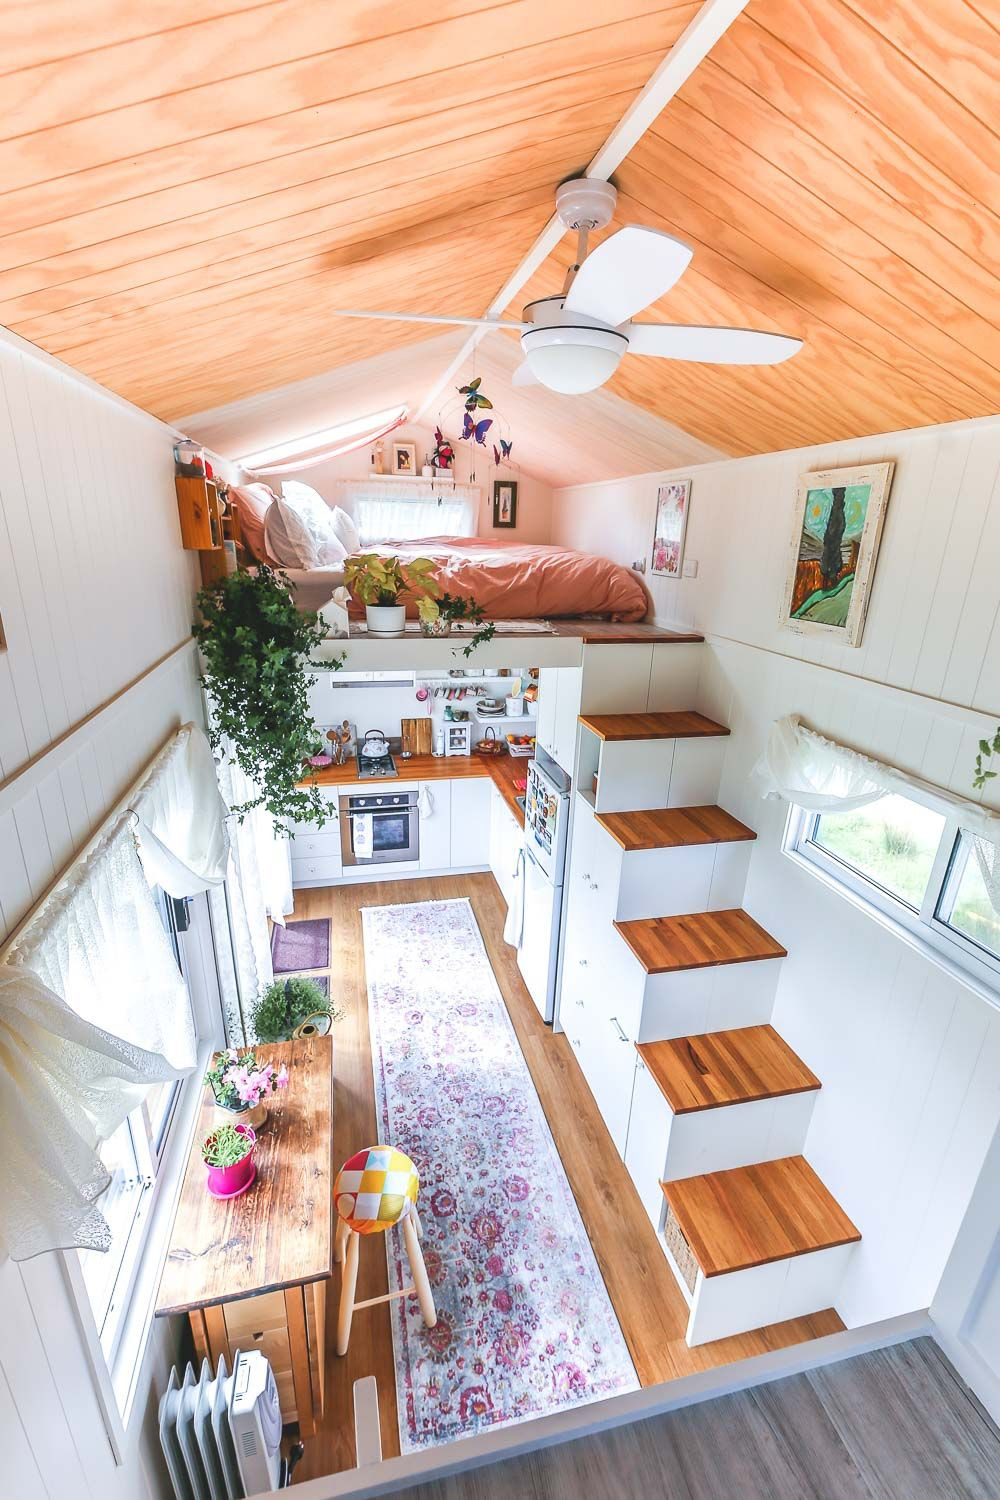 Floor Plans for Tiny Houses On Wheels Luxury Woman S Dream Tiny House even Has A Walk In Wardrobe